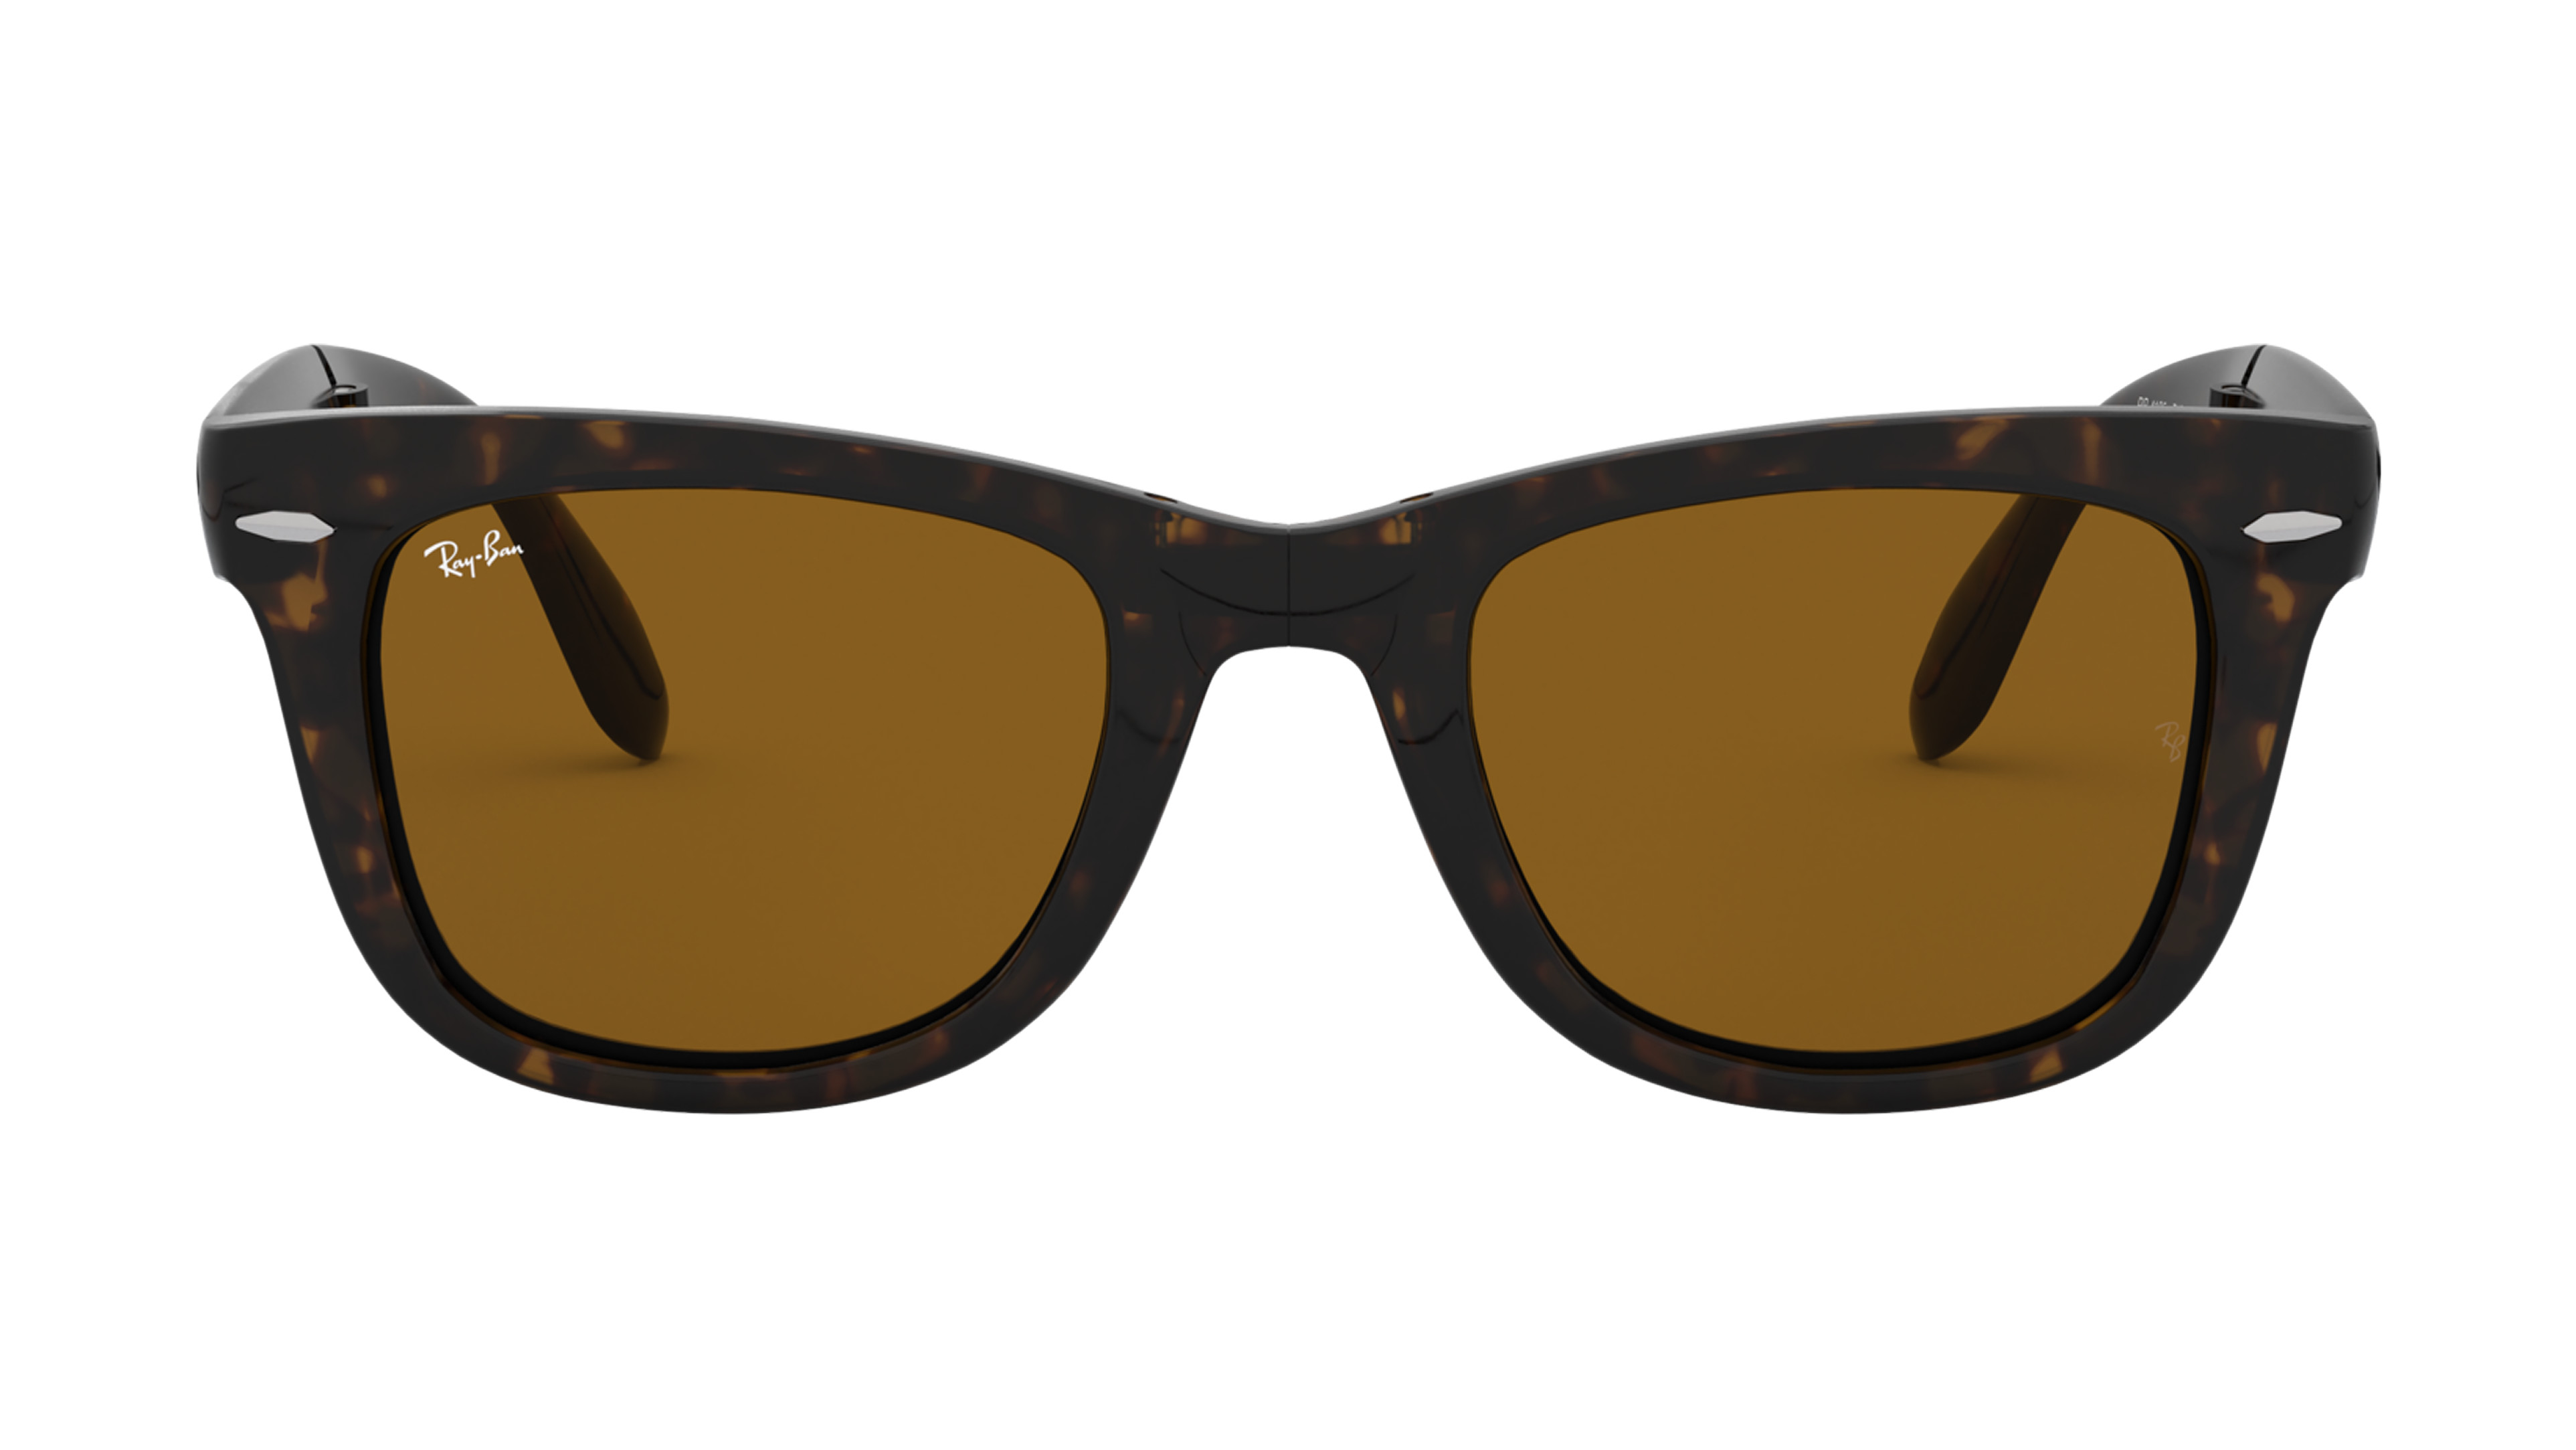 805289161226-front-rayban_1